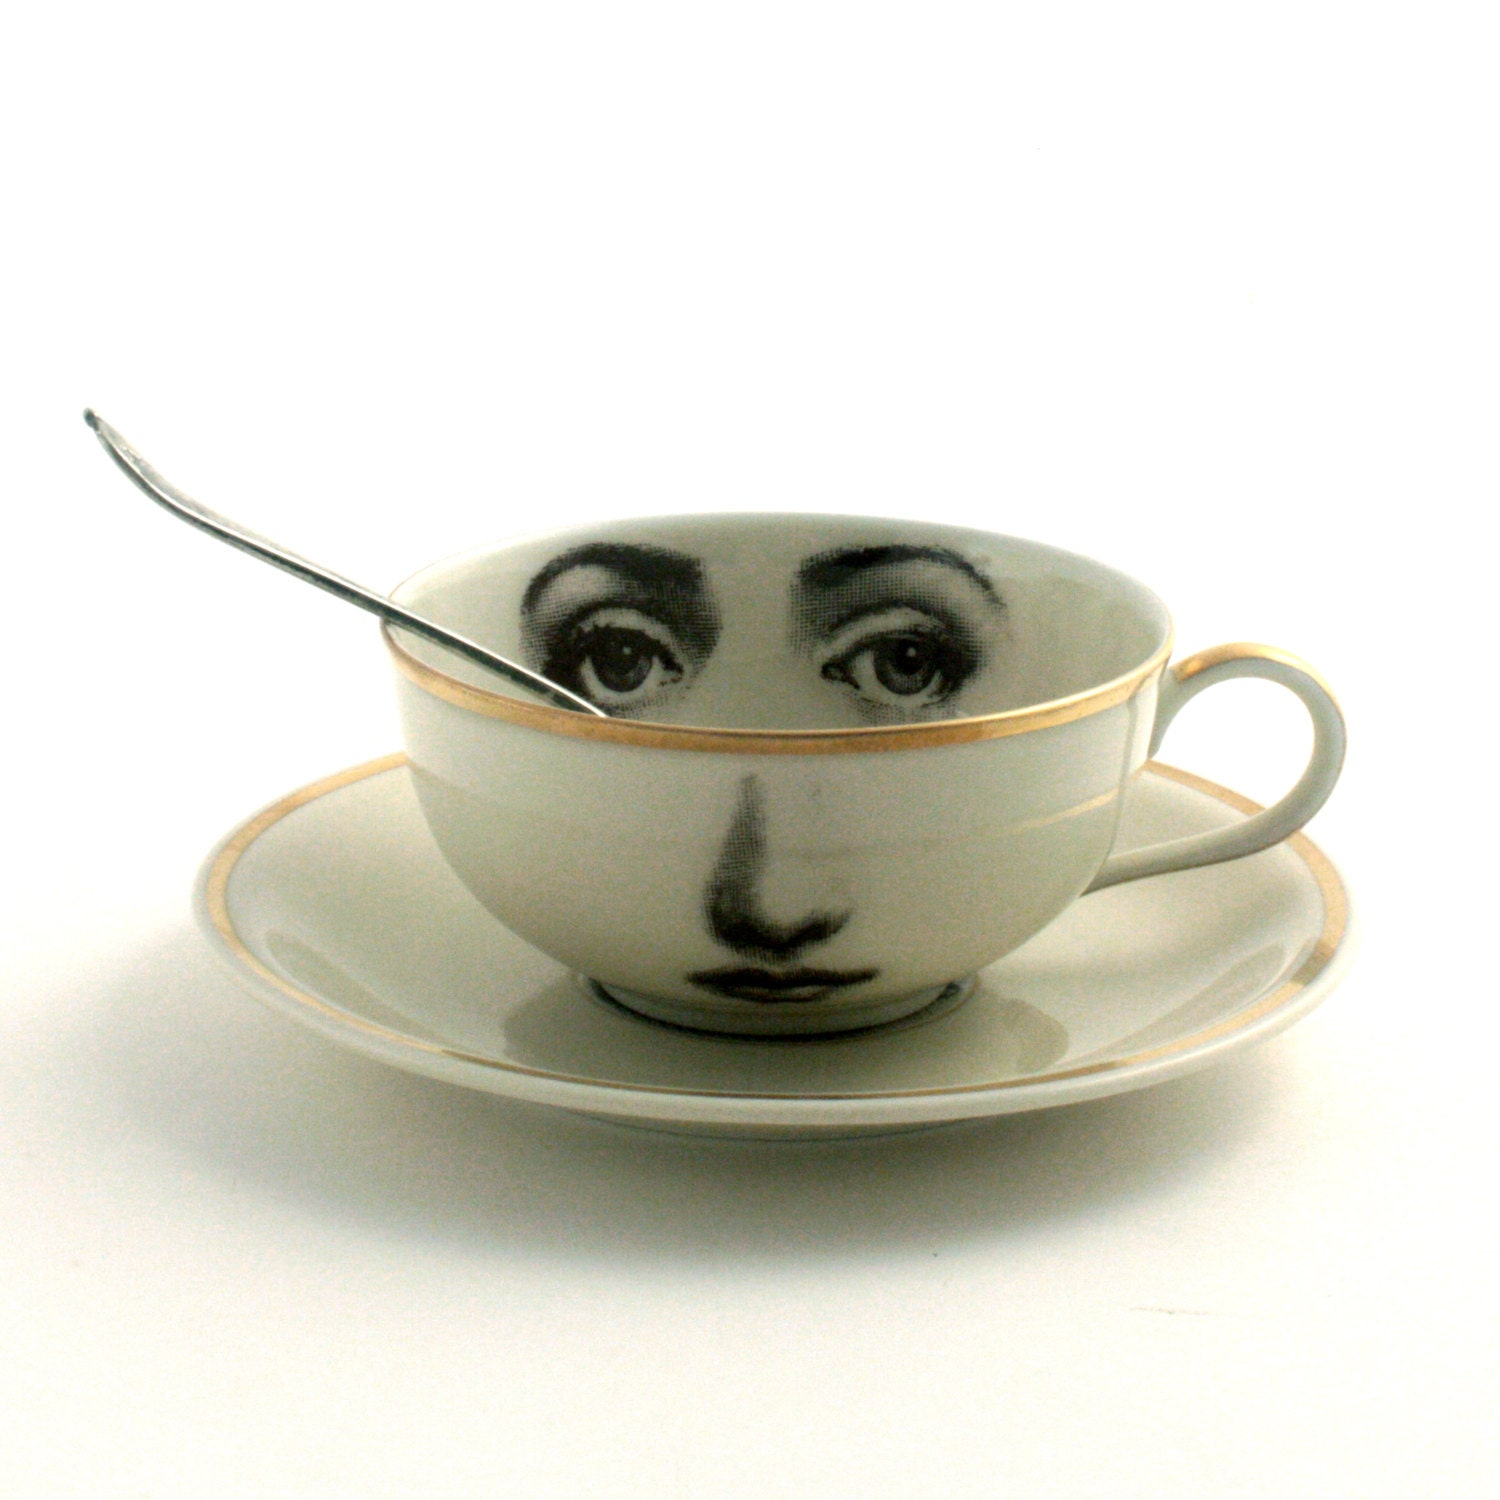 Altered Porcelain Eye Cup Tea Coffee Saucer Woman Face Vintage